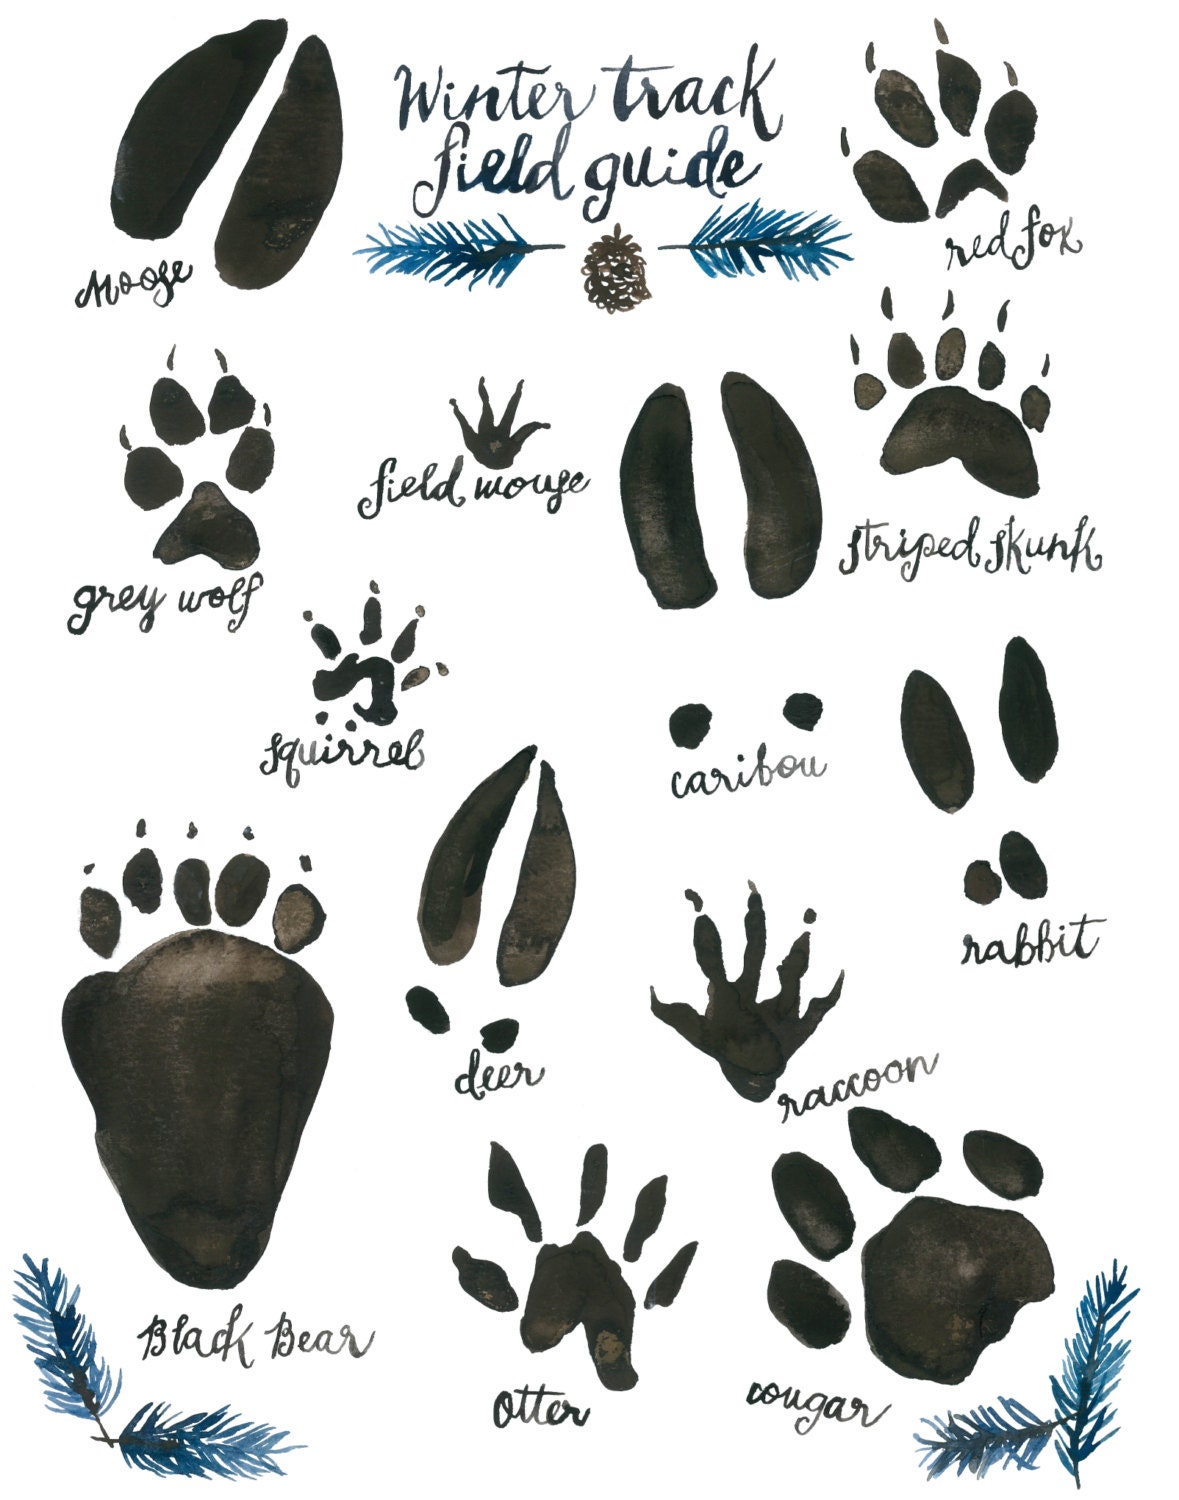 It's just a photo of Current Printable Animal Tracks